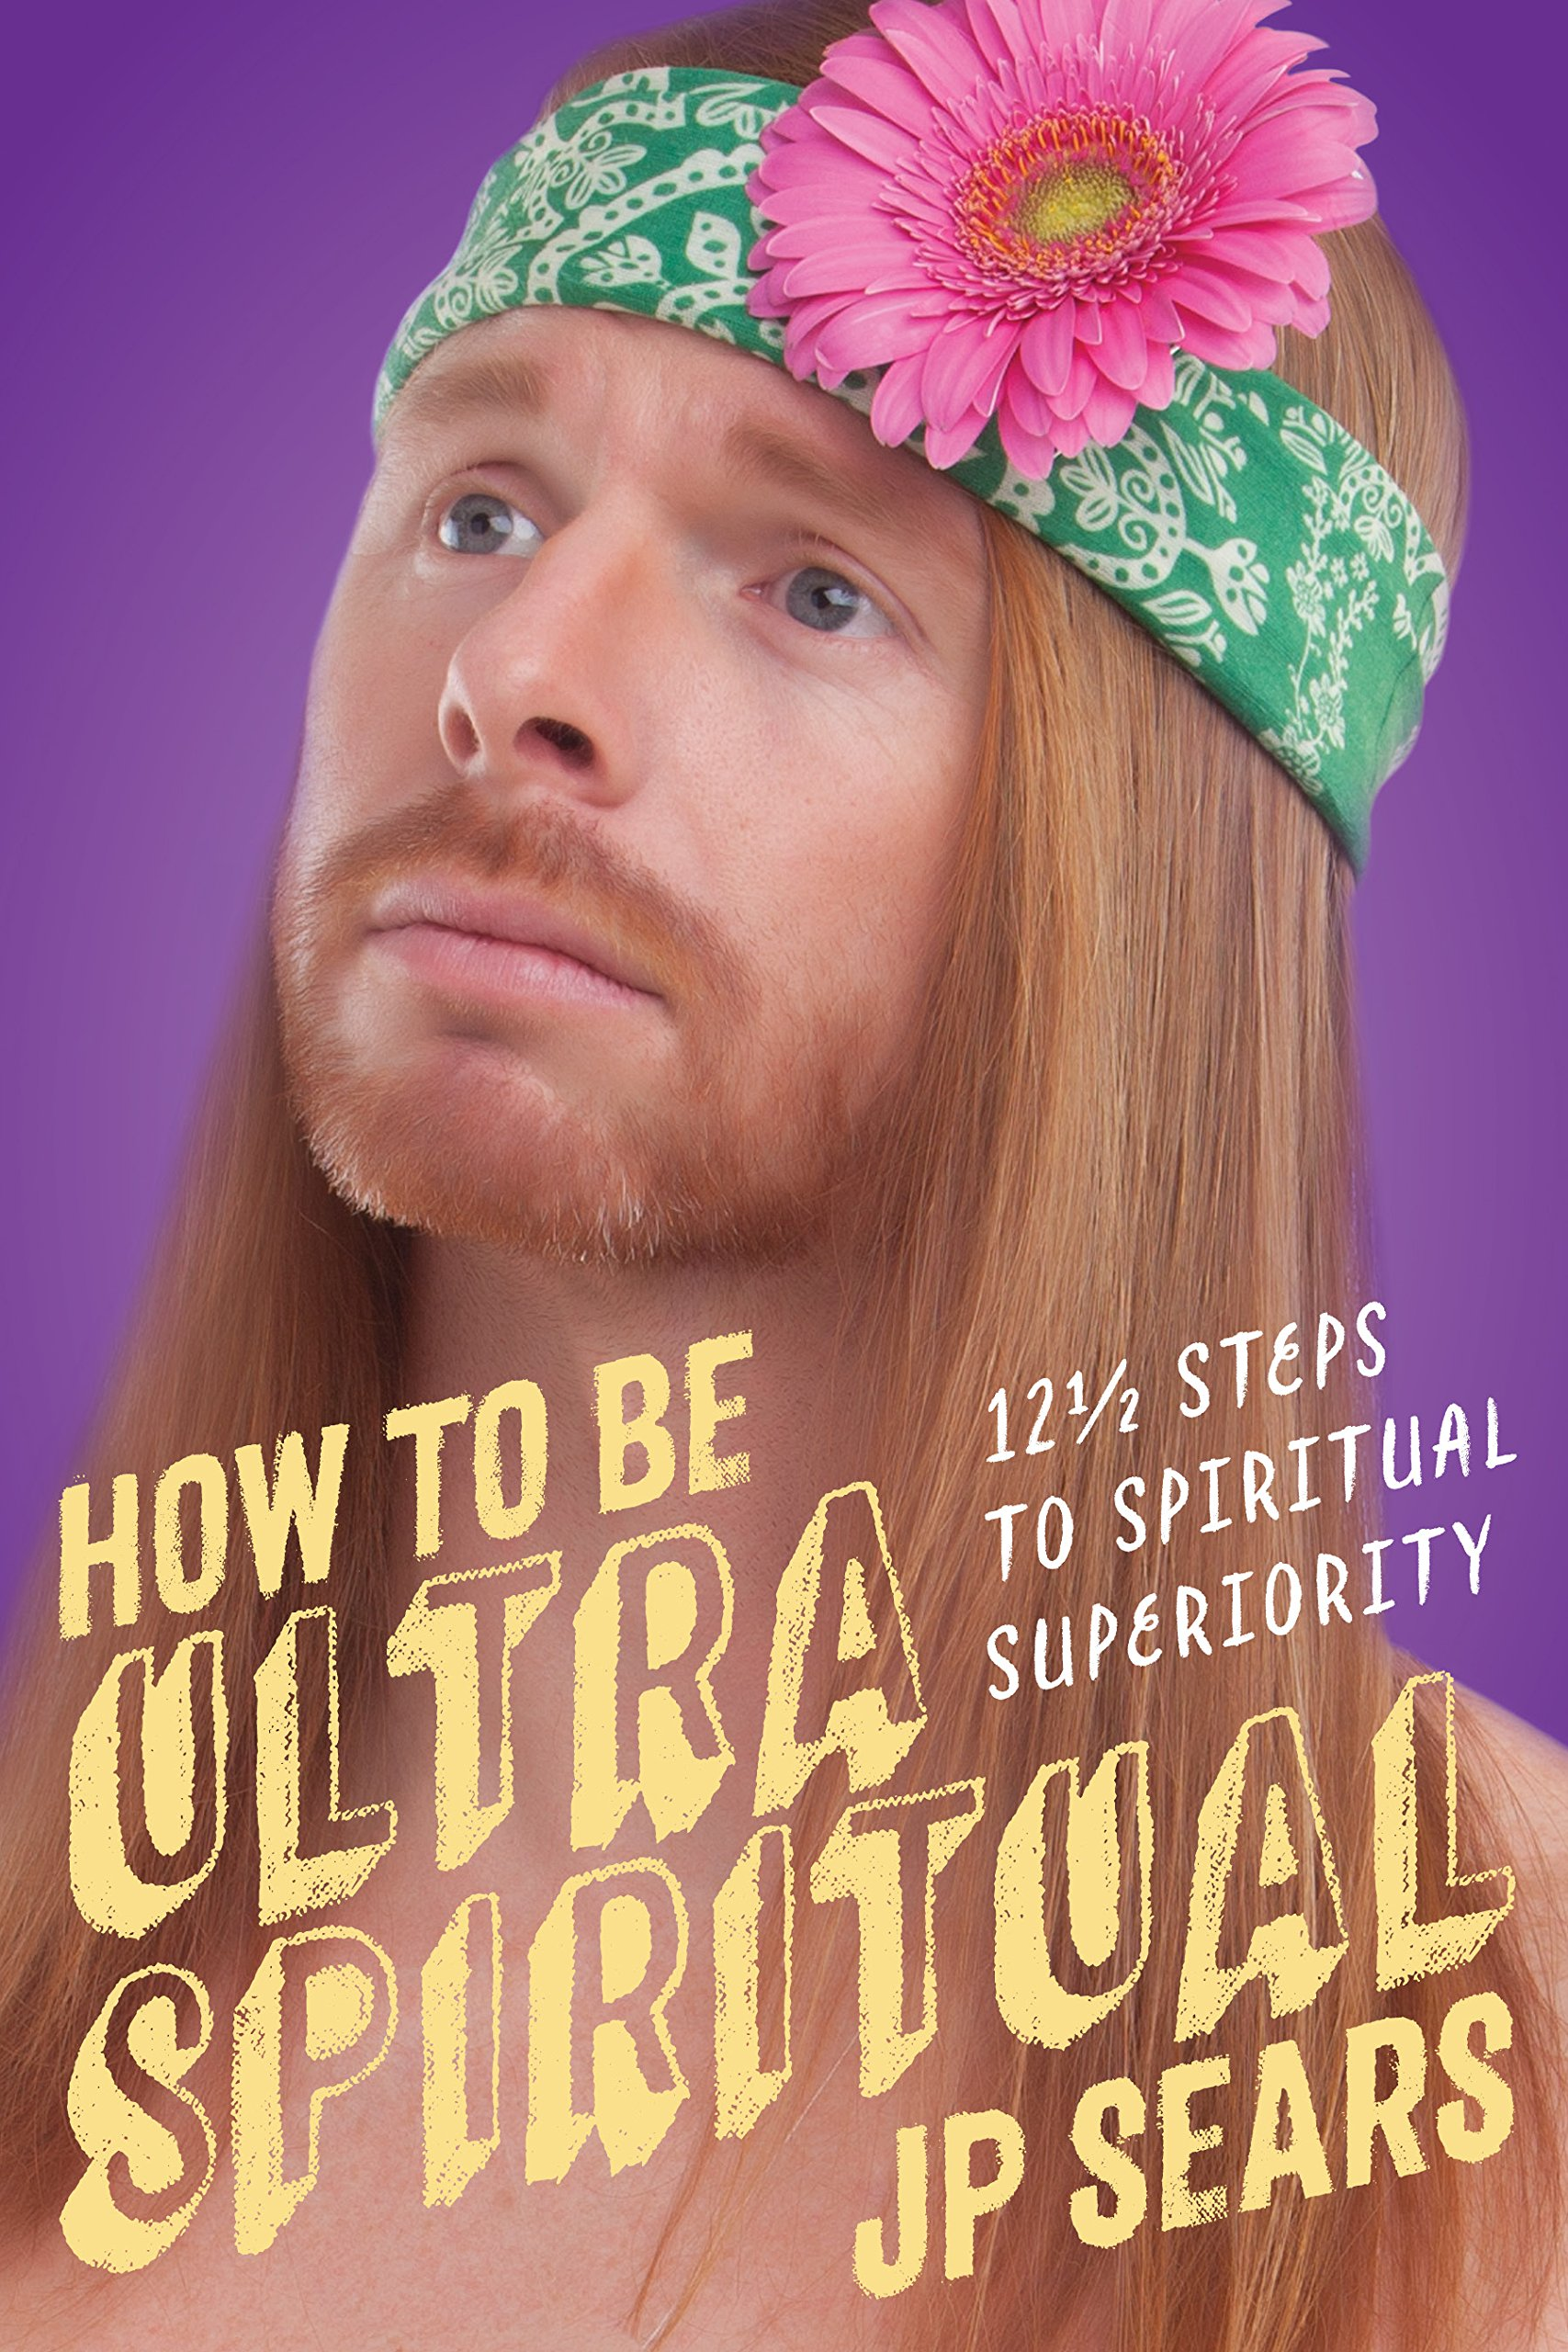 How To Be Ultra Spiritual  12 1 2 Steps To Spiritual Superiority  English Edition